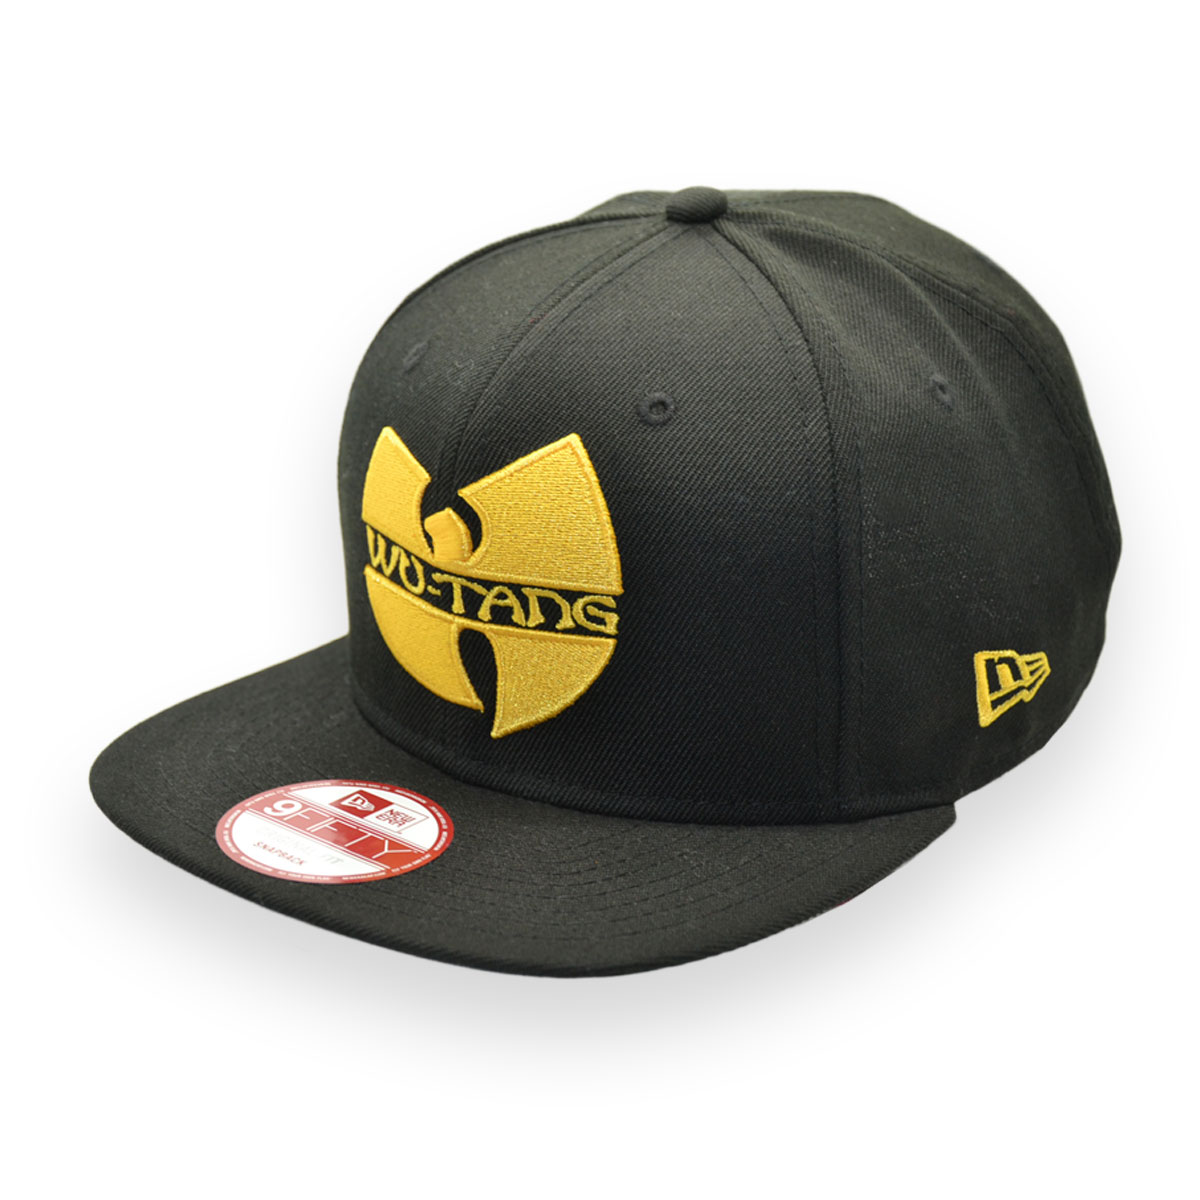 NEW ERA WU-TANG CLAN BLACK 9FIFTY SNAPBACK CAP - MyCraze 6e8b4cc56e6